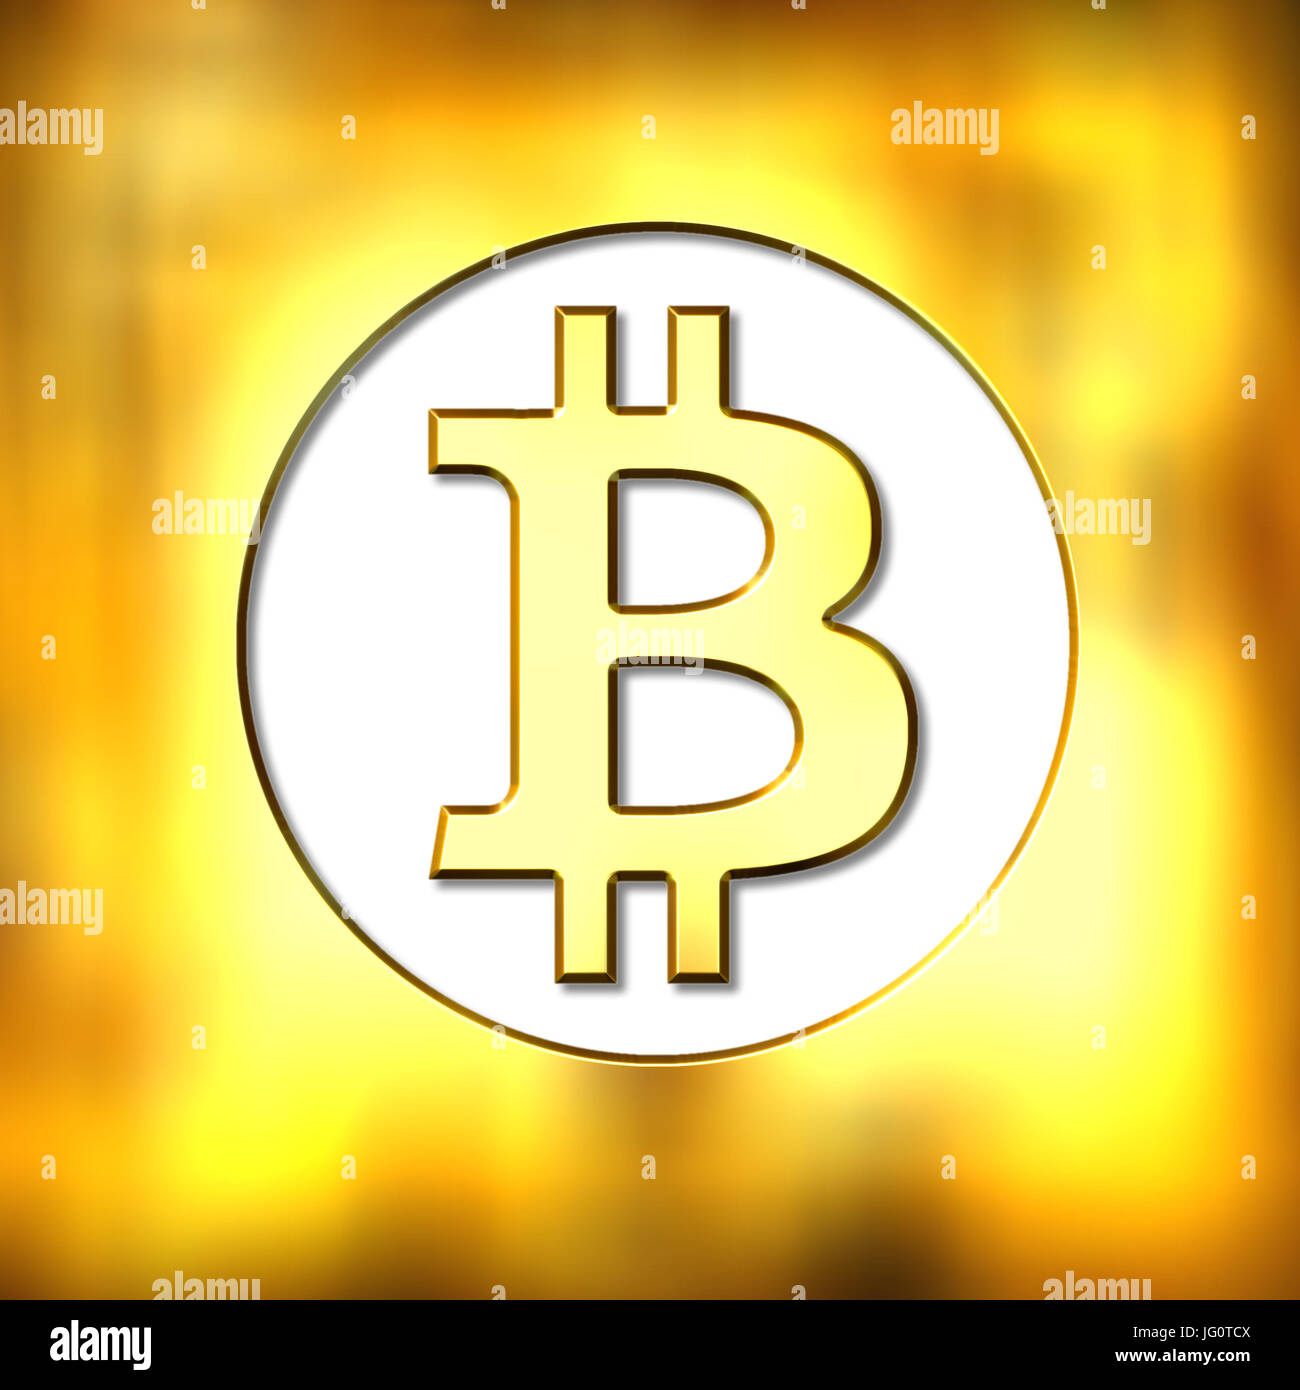 Cripto illustration symbole monétaire Bitcoin Photo Stock